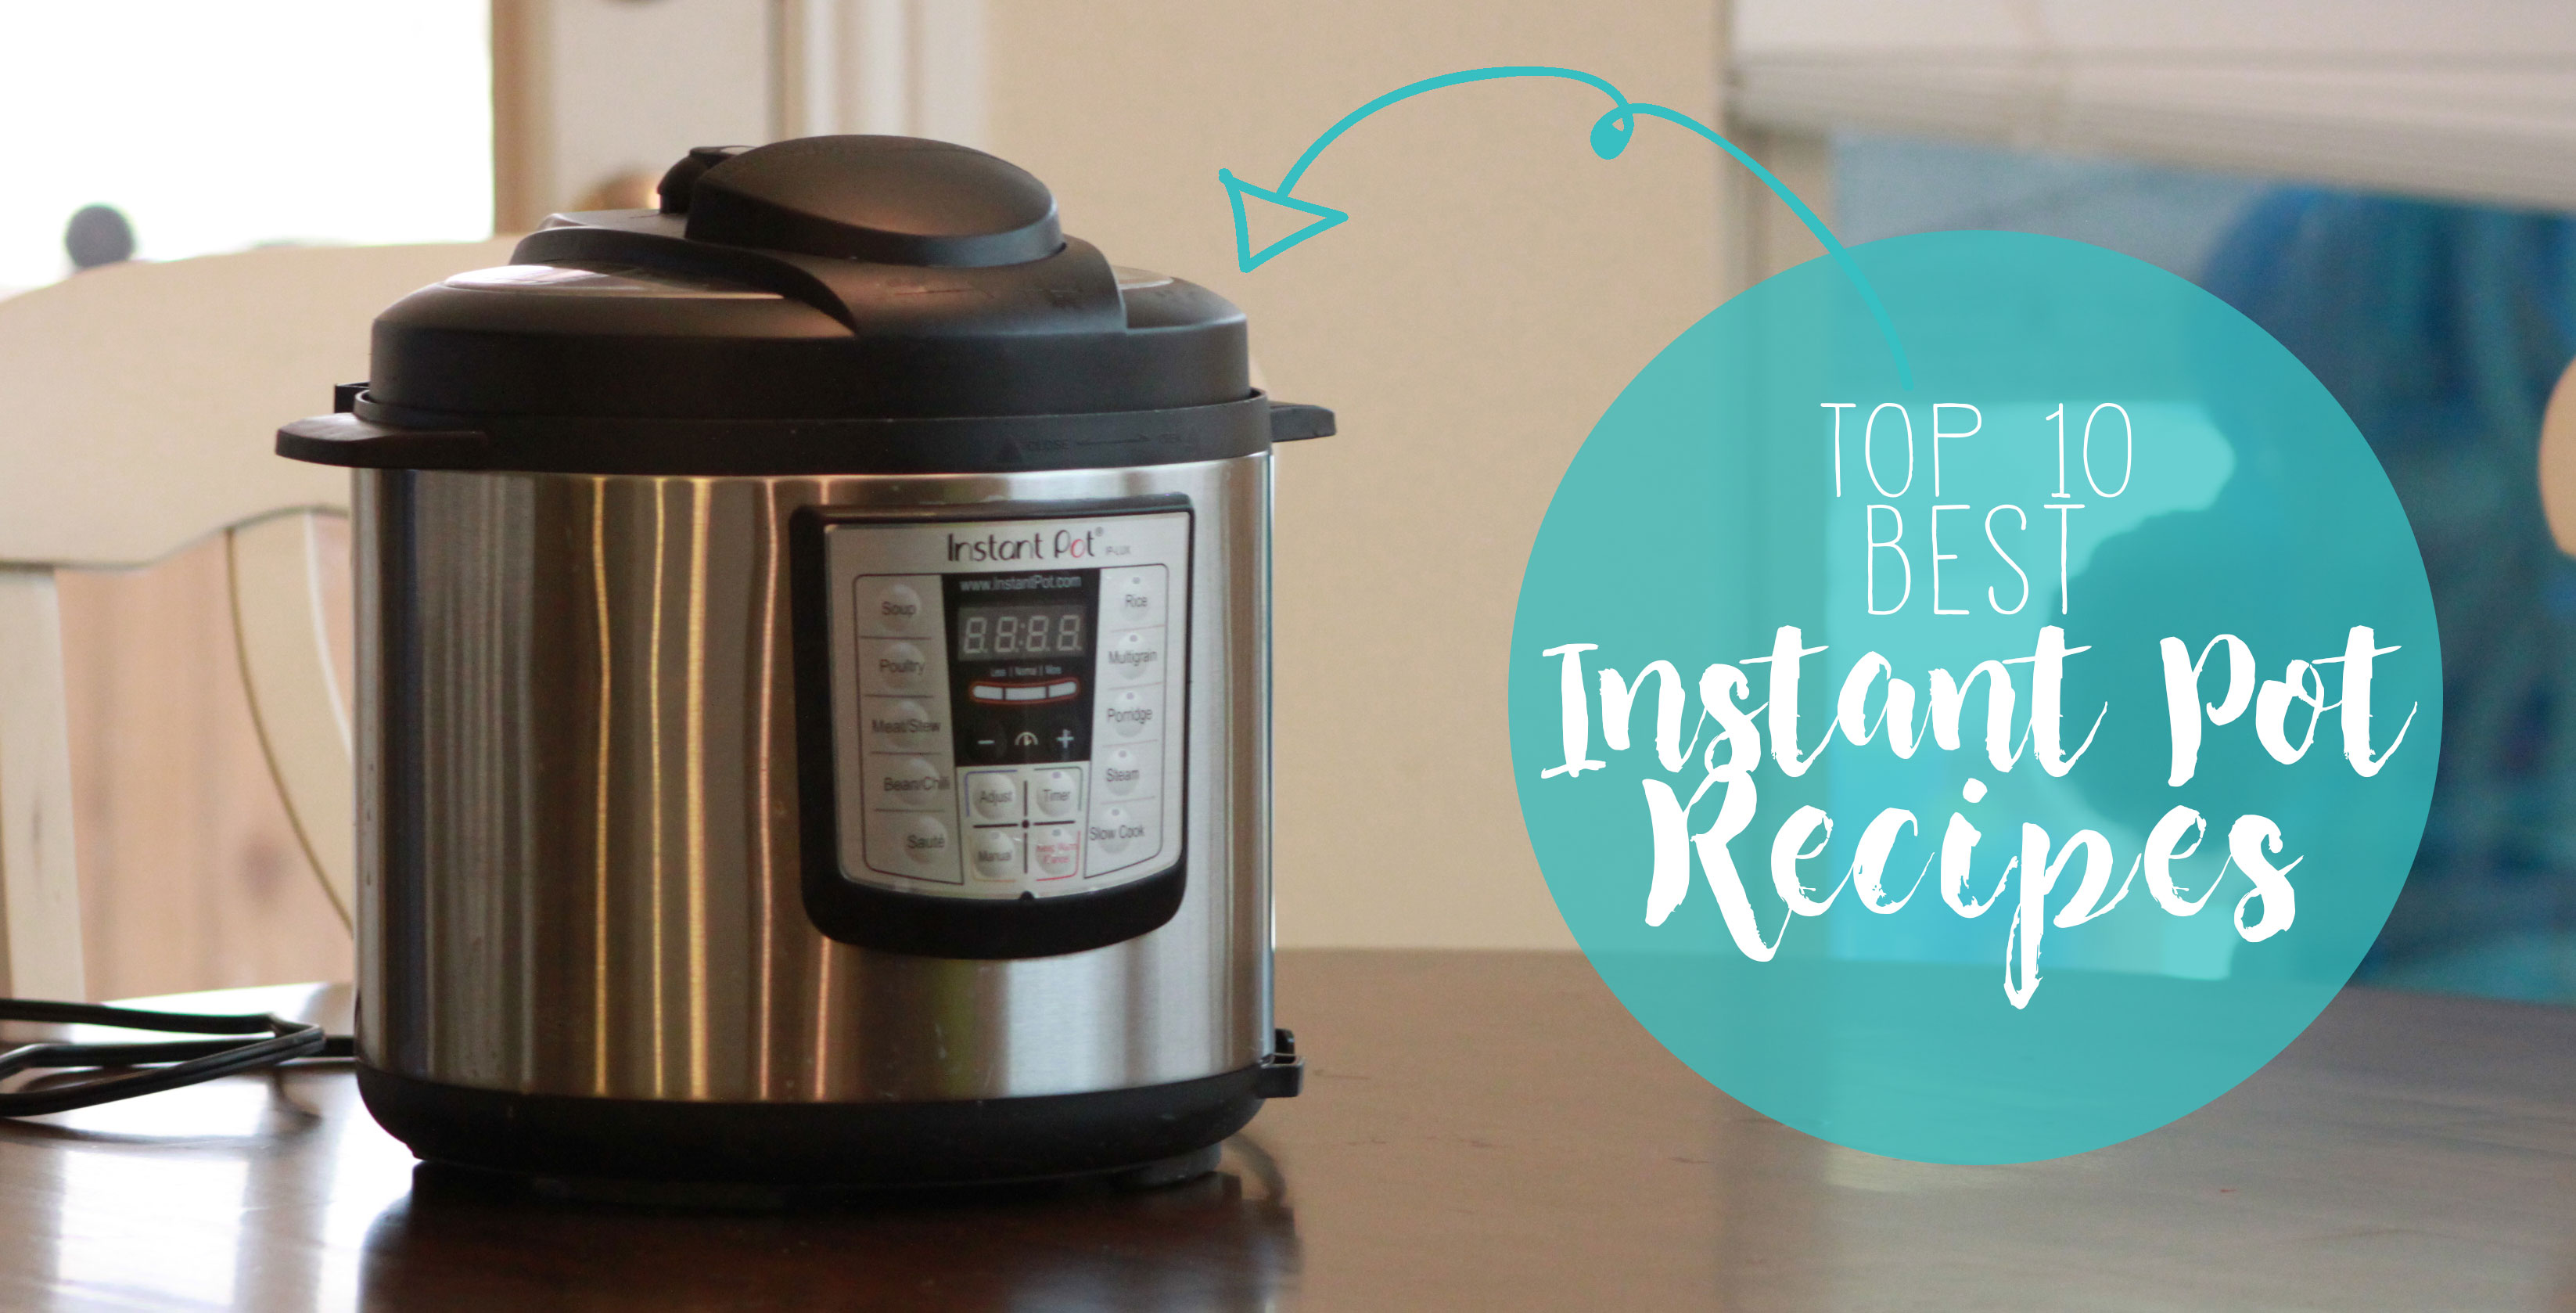 Top 10 Best Instant Pot Recipes One Hangry Mama